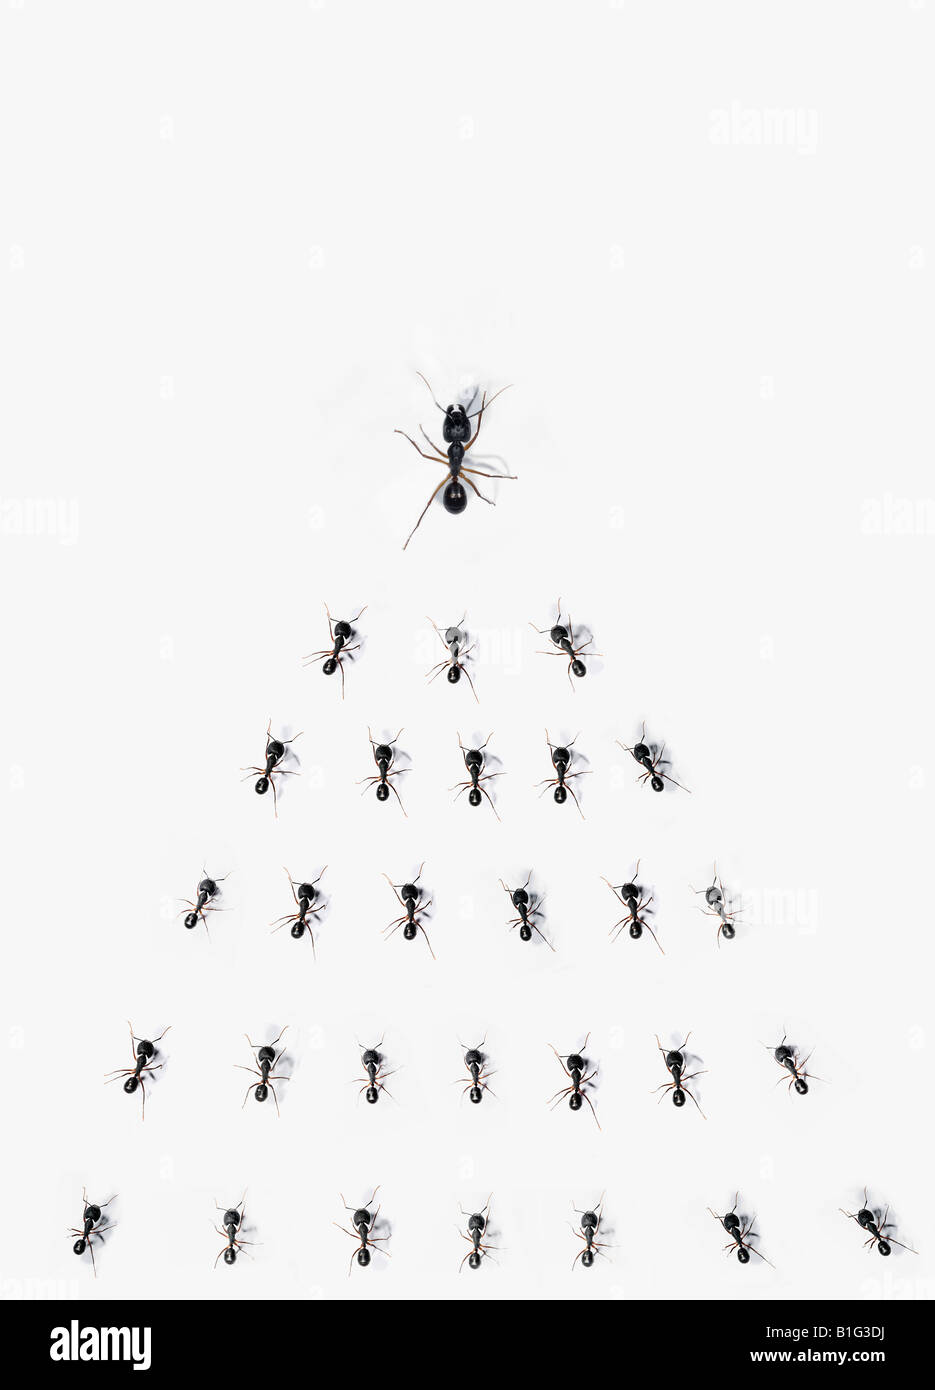 Large ant leading a group of smaller ants - Stock Image